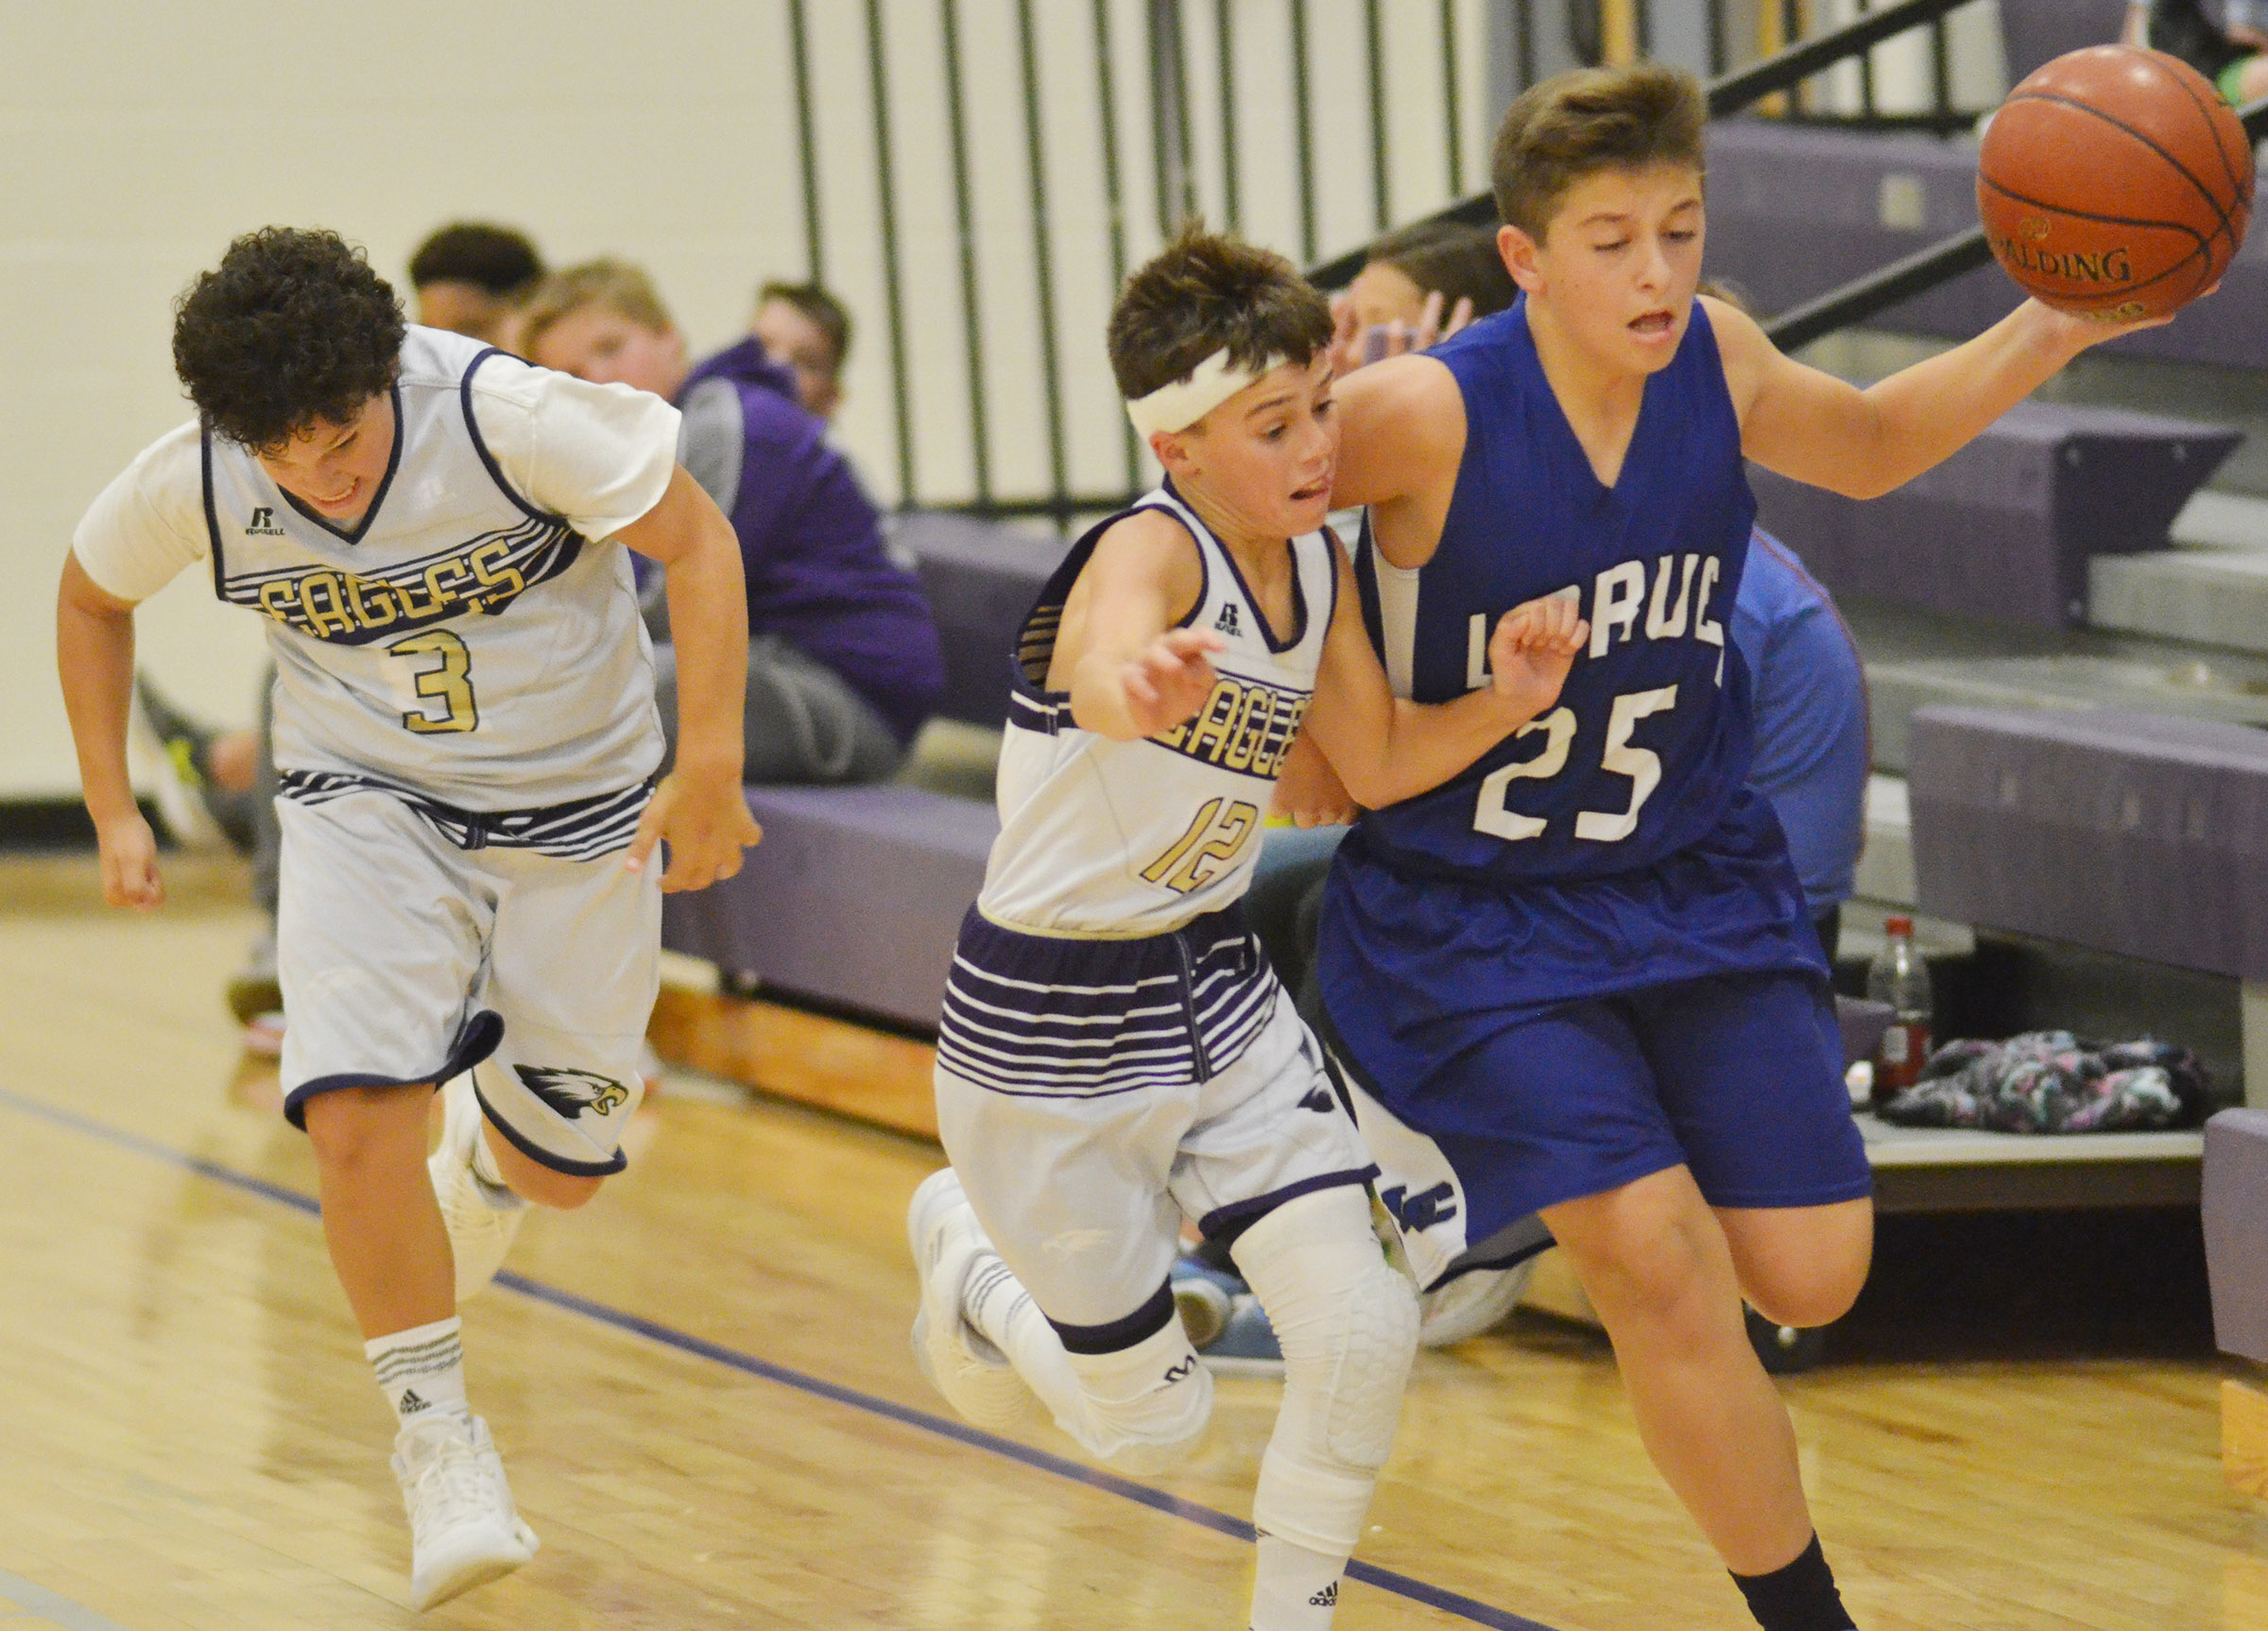 CMS seventh-grader Kaydon Taylor runs down the court as seventh-grader Chase Hord battles for the ball.